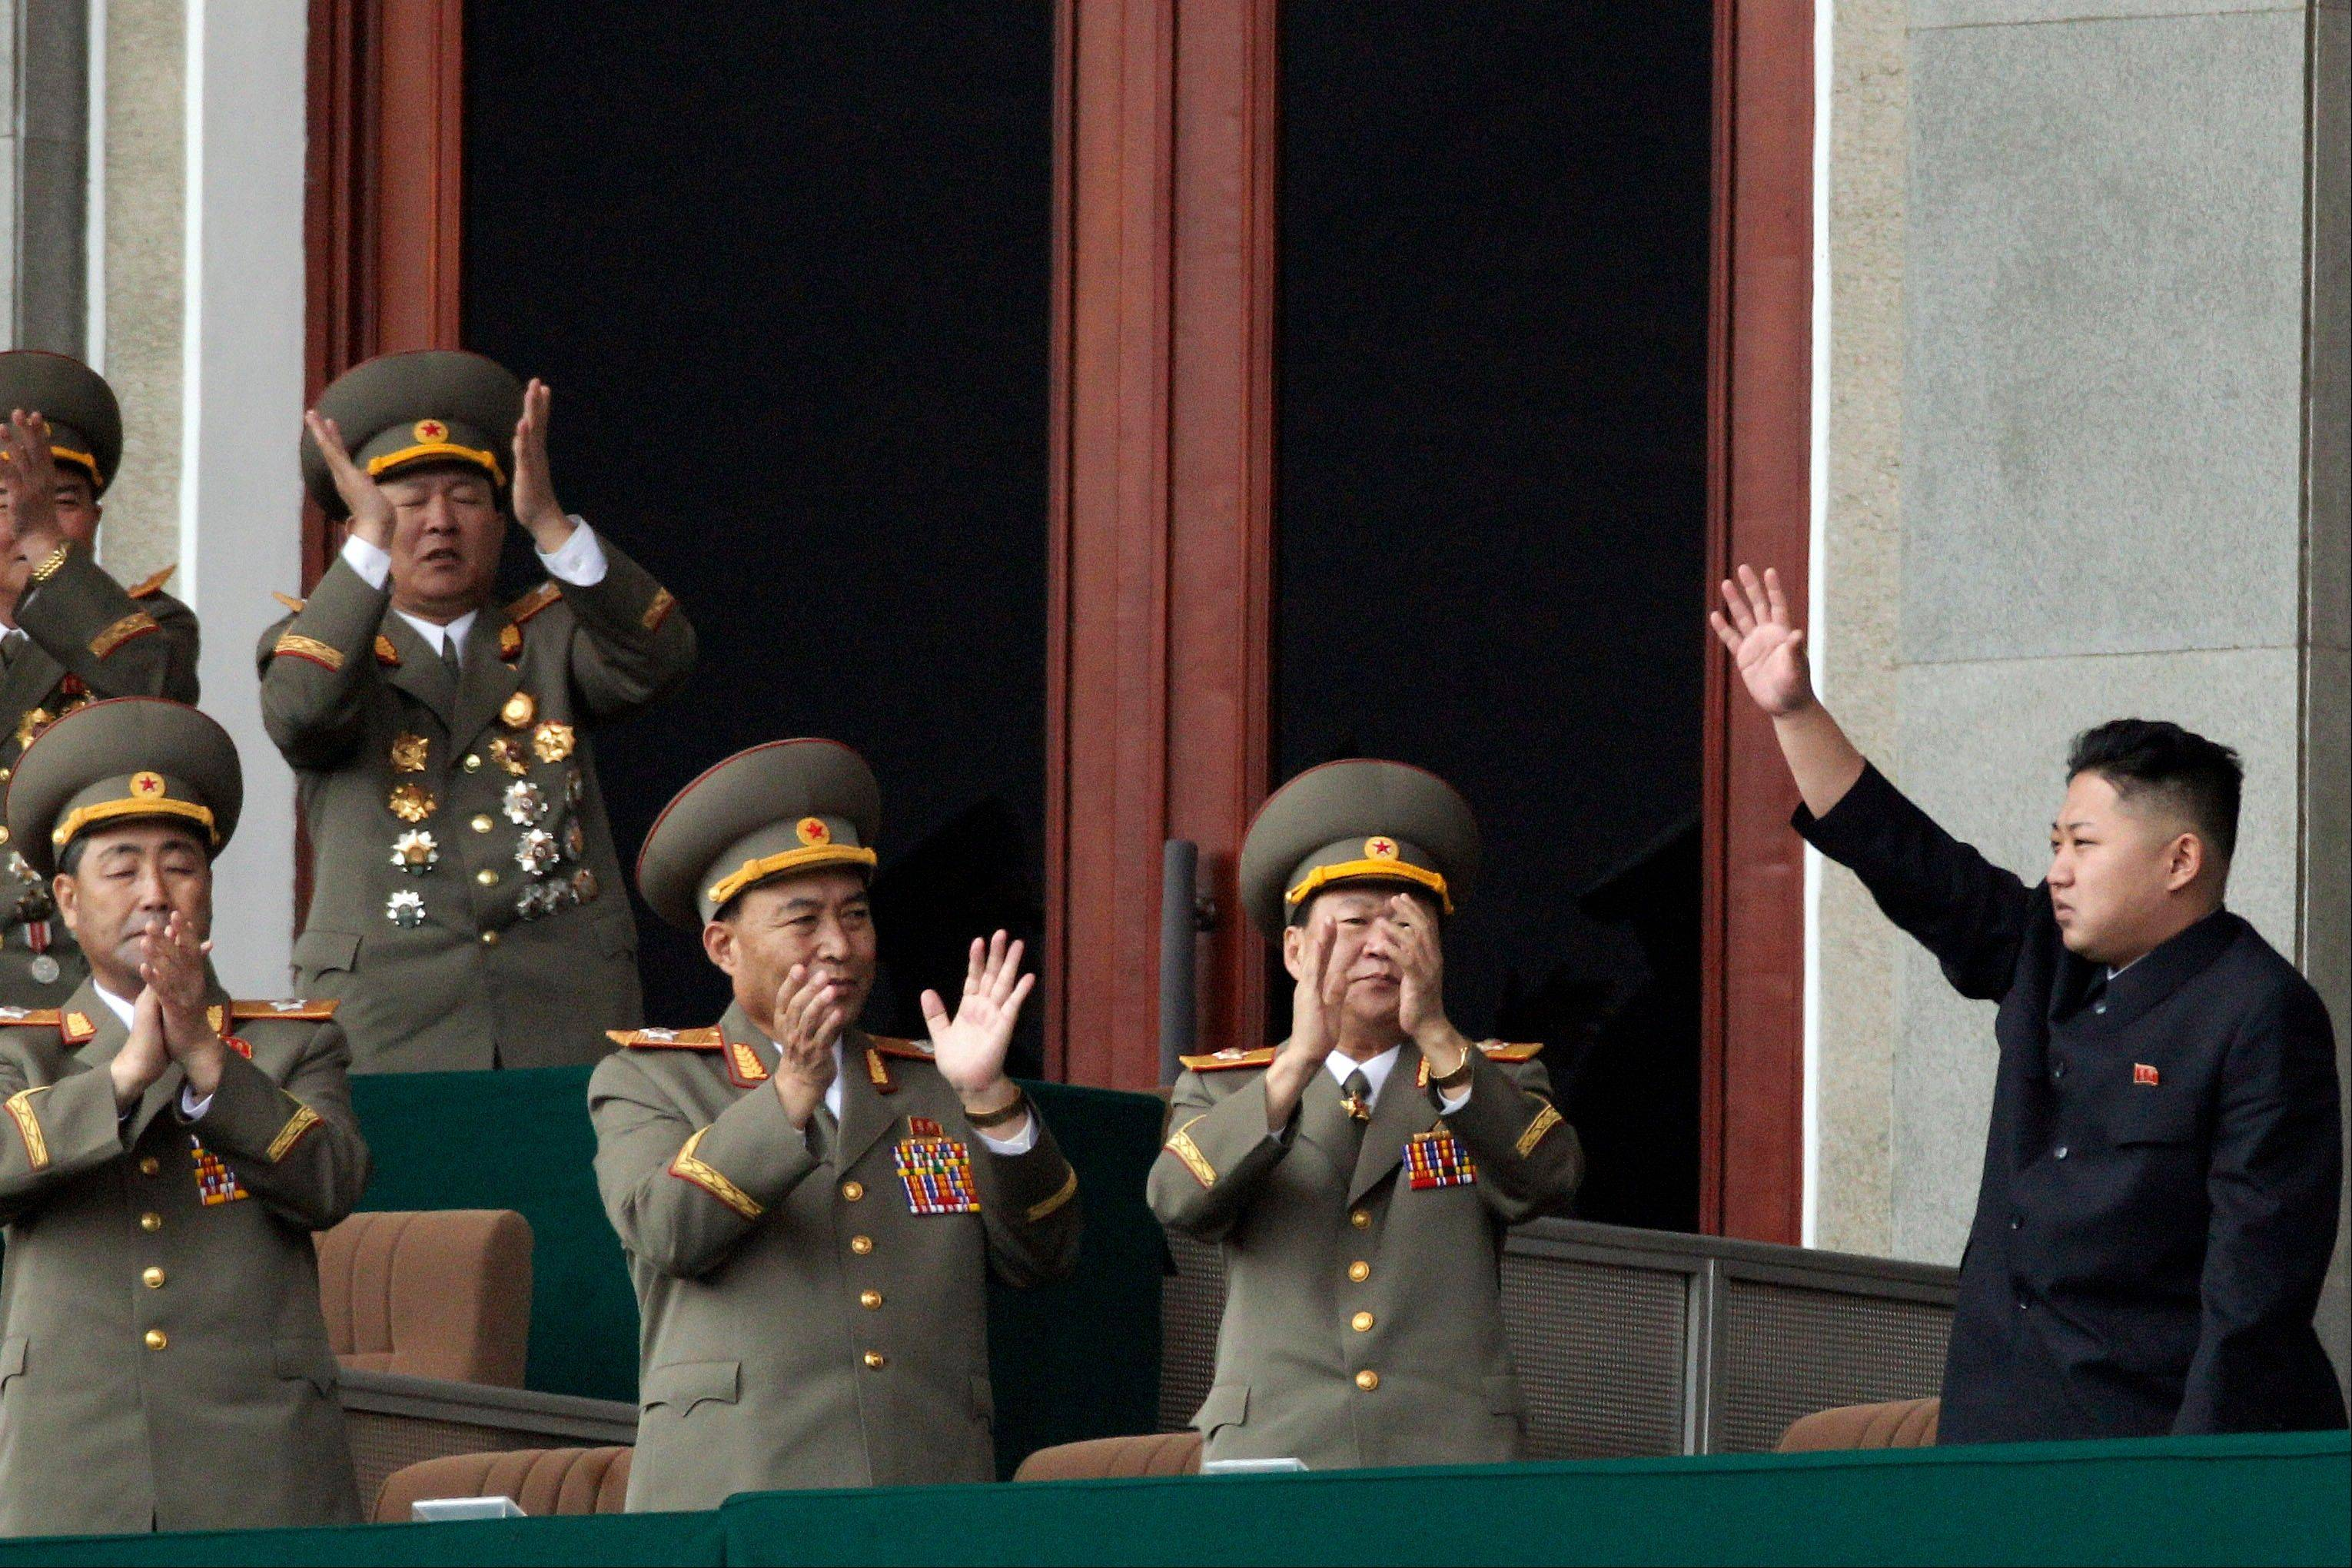 North Korean leader Kim Jong Un, left, waves as North Korean military officers clap at a stadium in Pyongyang during a mass meeting called by the Central Committee of North Korea's ruling party.